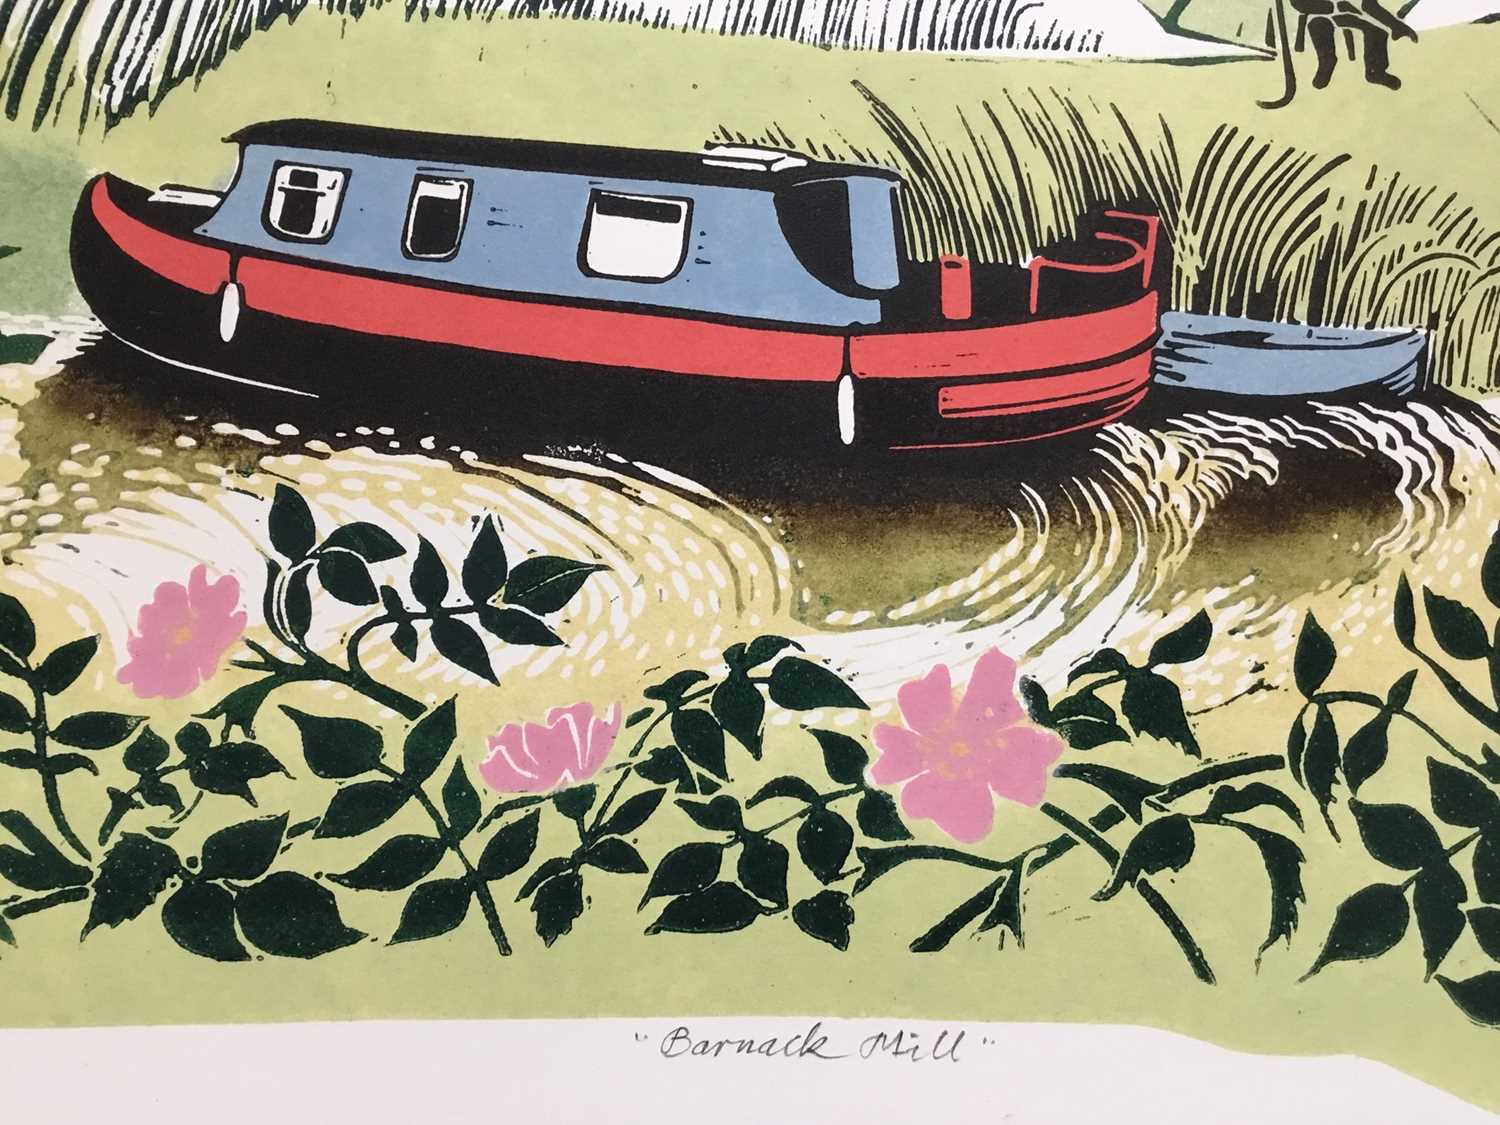 Penny Berry Paterson (1941-2021) colour woodcut print, Barnack Mill, signed titled and numbered 17/2 - Image 3 of 4